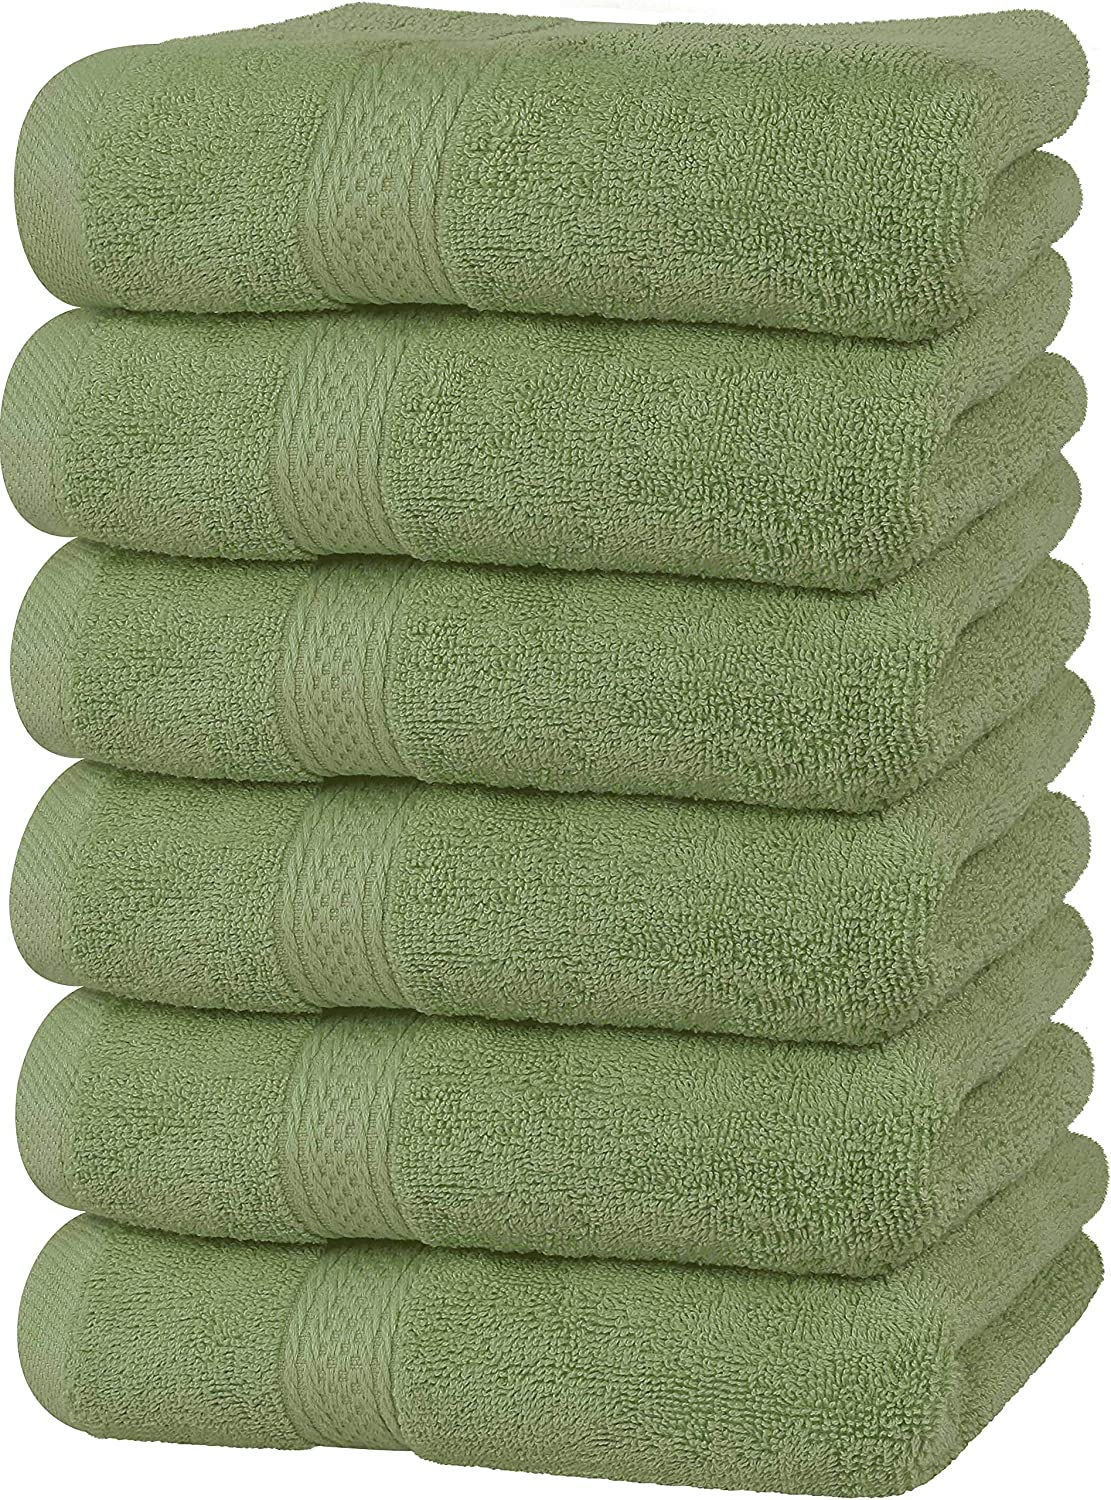 Utopia Towels Premium Sage Green Hand Towels - 100% Combed Ring Spun Cotton, Ultra Soft and Highly Absorbent, 600 GSM Exrta Large Hand Towels 16 x 28 inches, Hotel & Spa Quality Hand Towels (6-Pack)